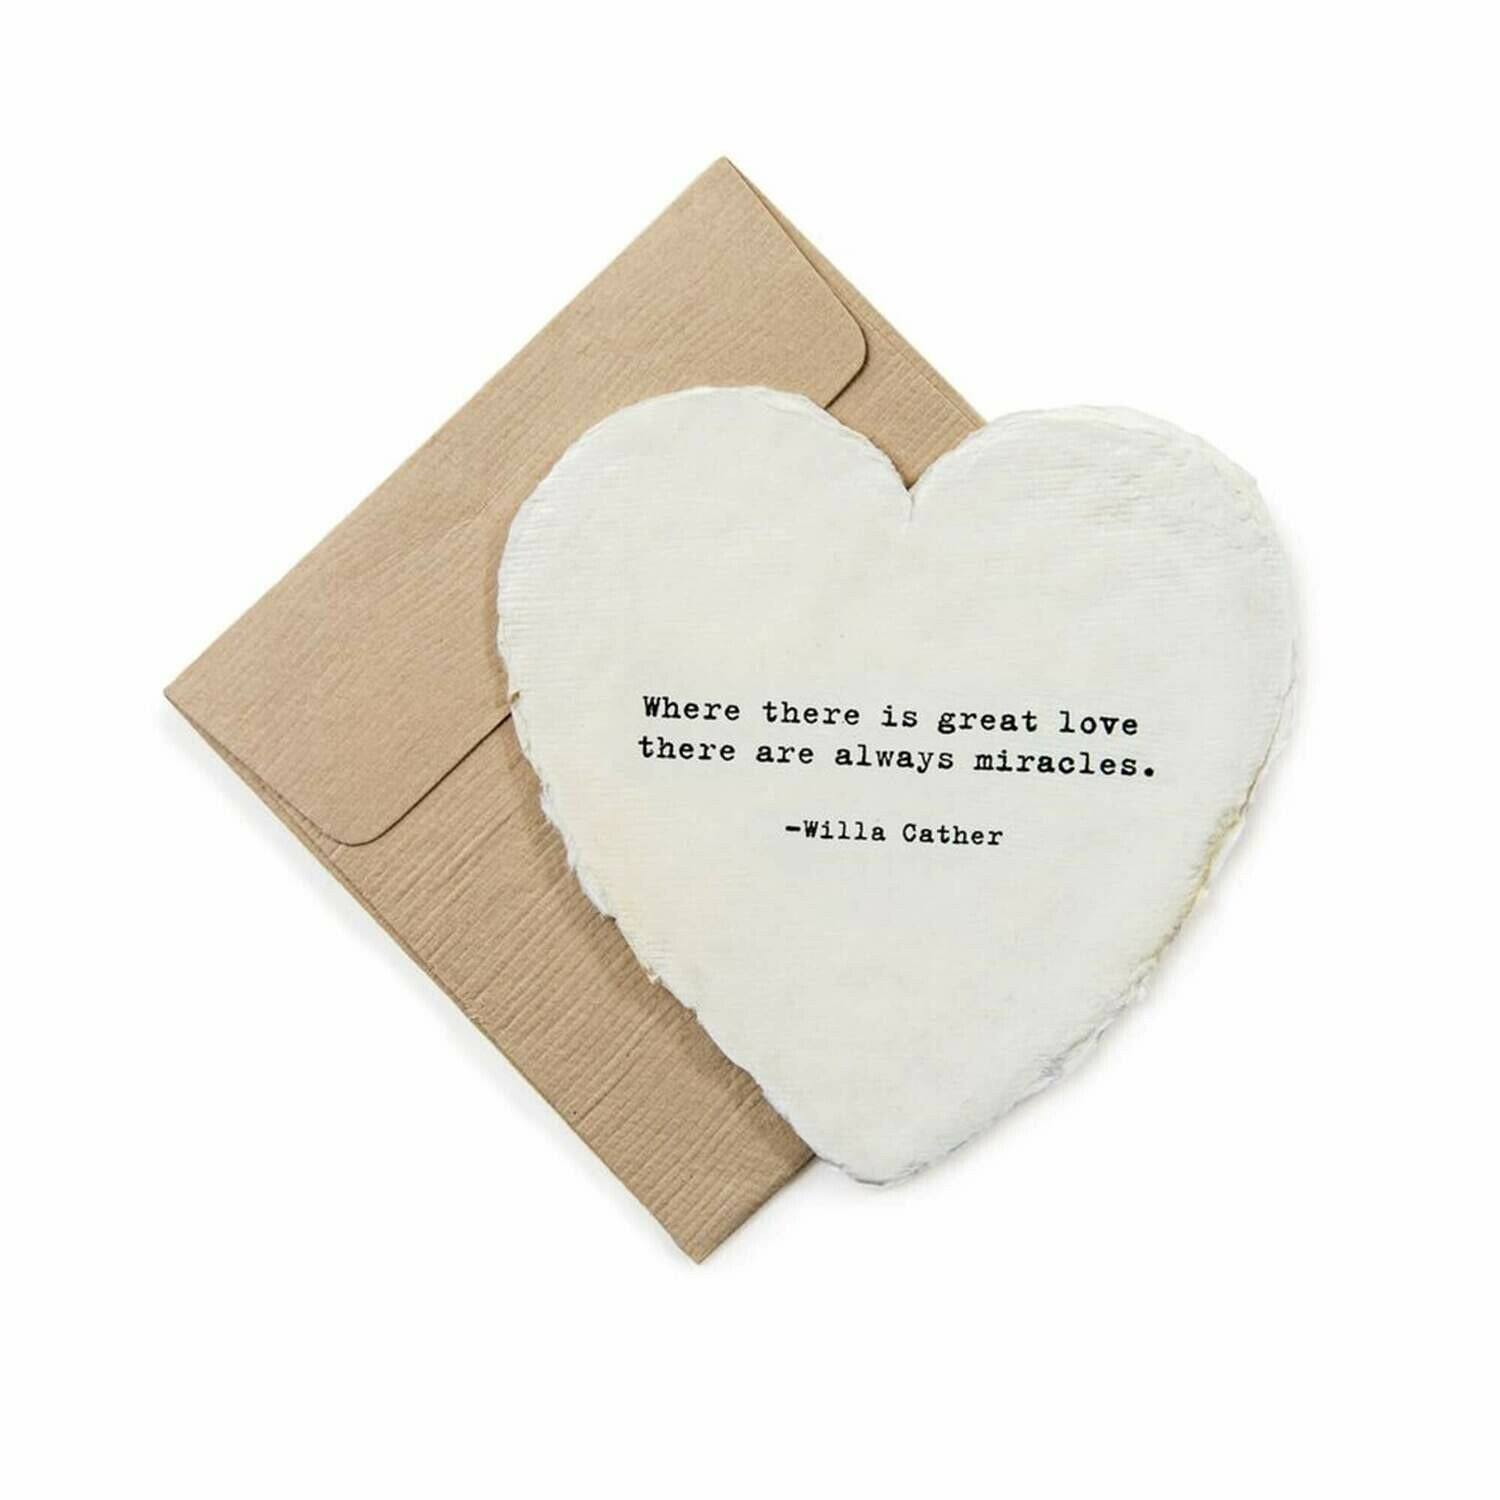 Mini Heart Shaped Card & Envelope-Where there is great love